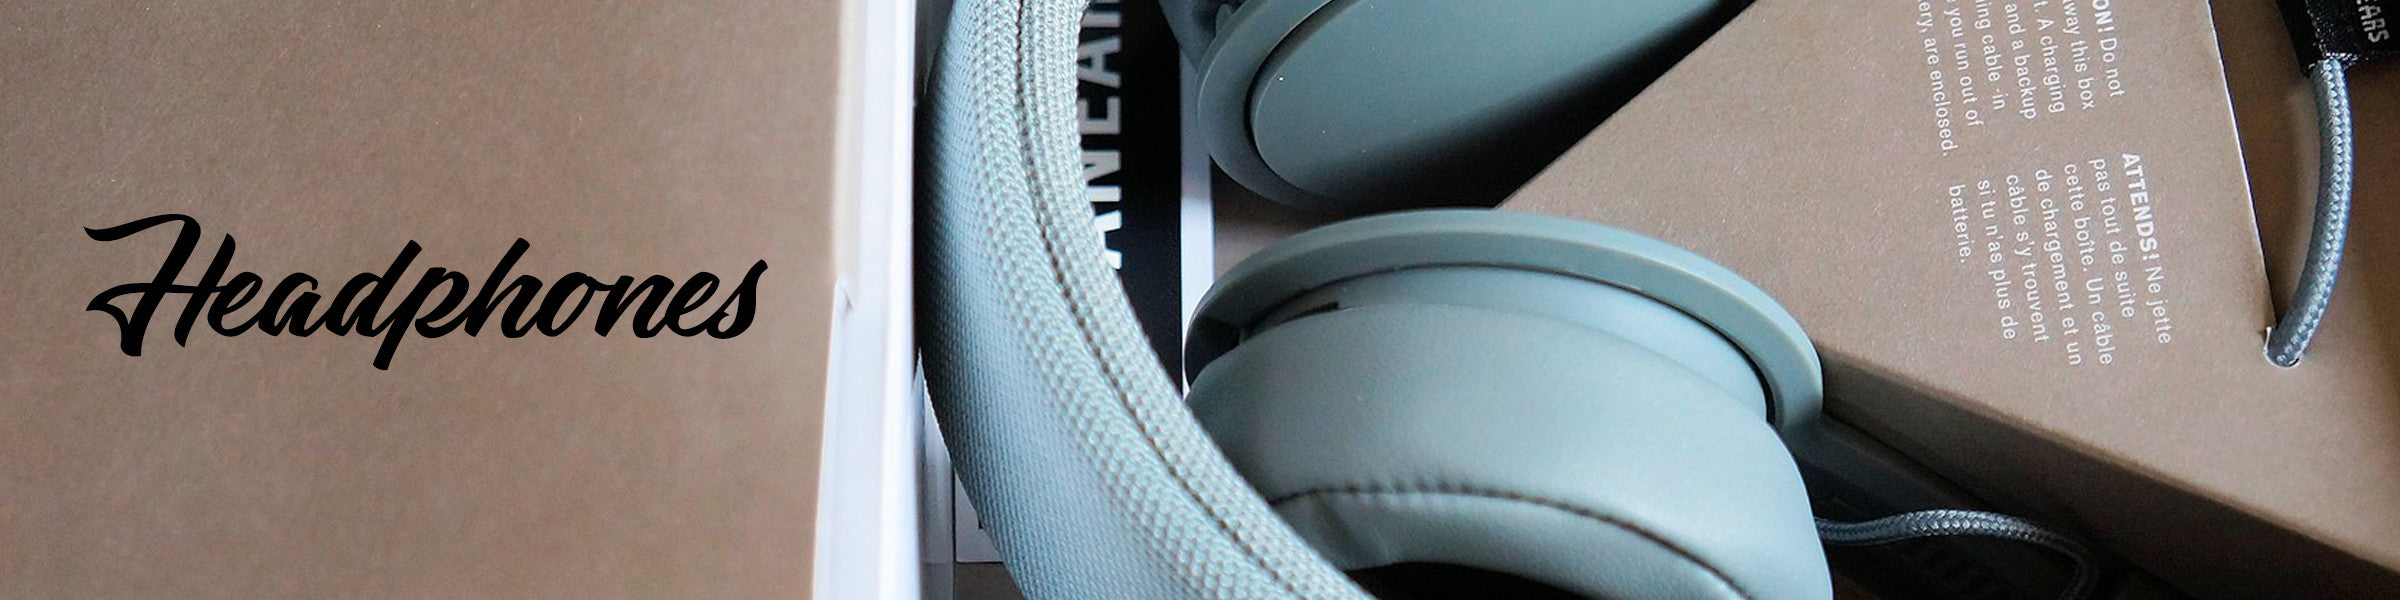 Headphones Urbanears Plattan Ii Snow Blue At Mercuri We Offer Some Of The Most Reliable Brands Such As Marshall And Letting You Experience Beauty Music With Innovation Style